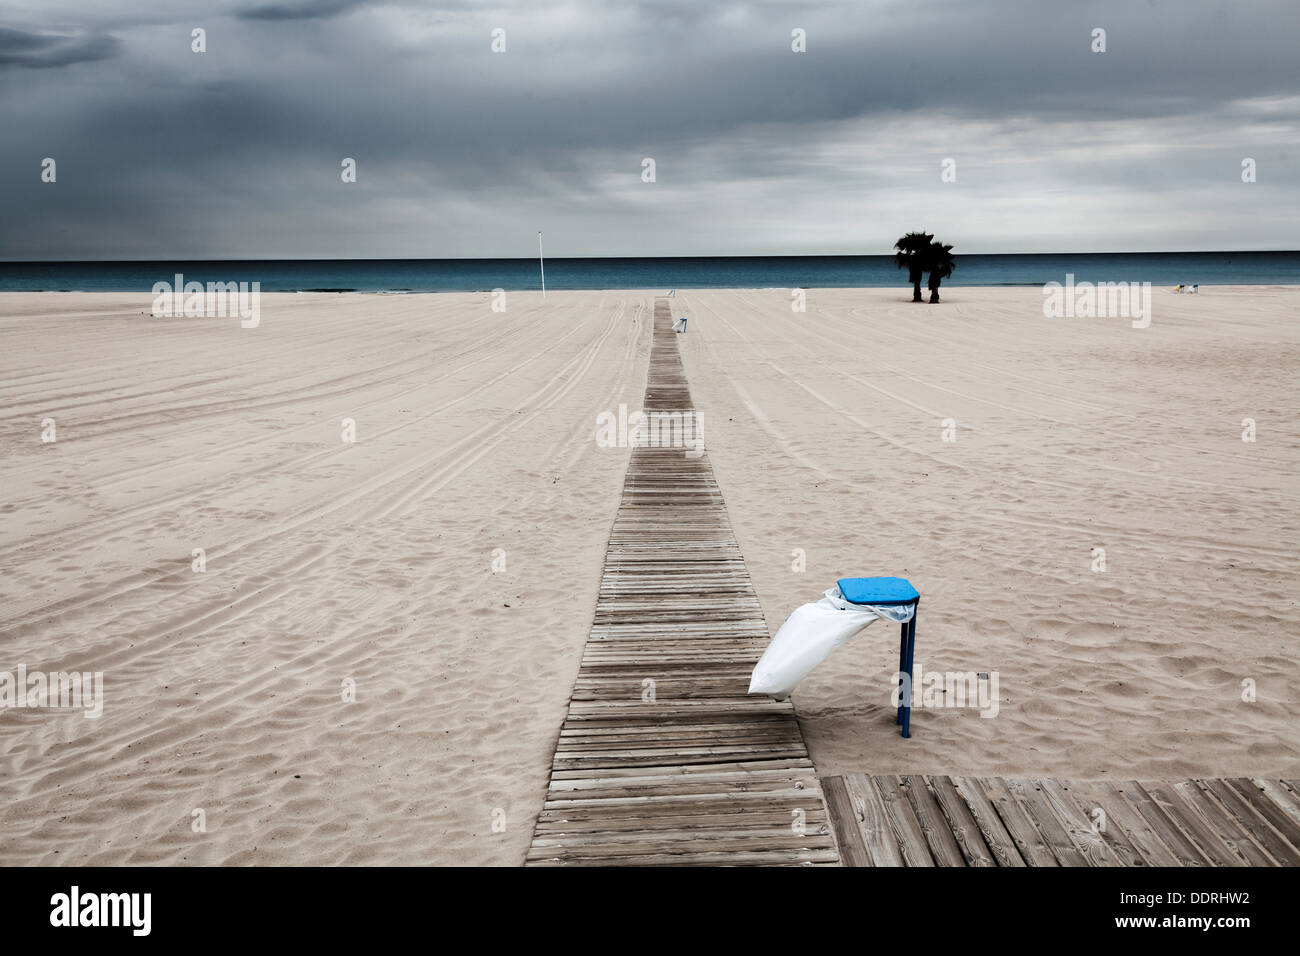 empty beach on an overcast windy day with rubbish bin - Stock Image